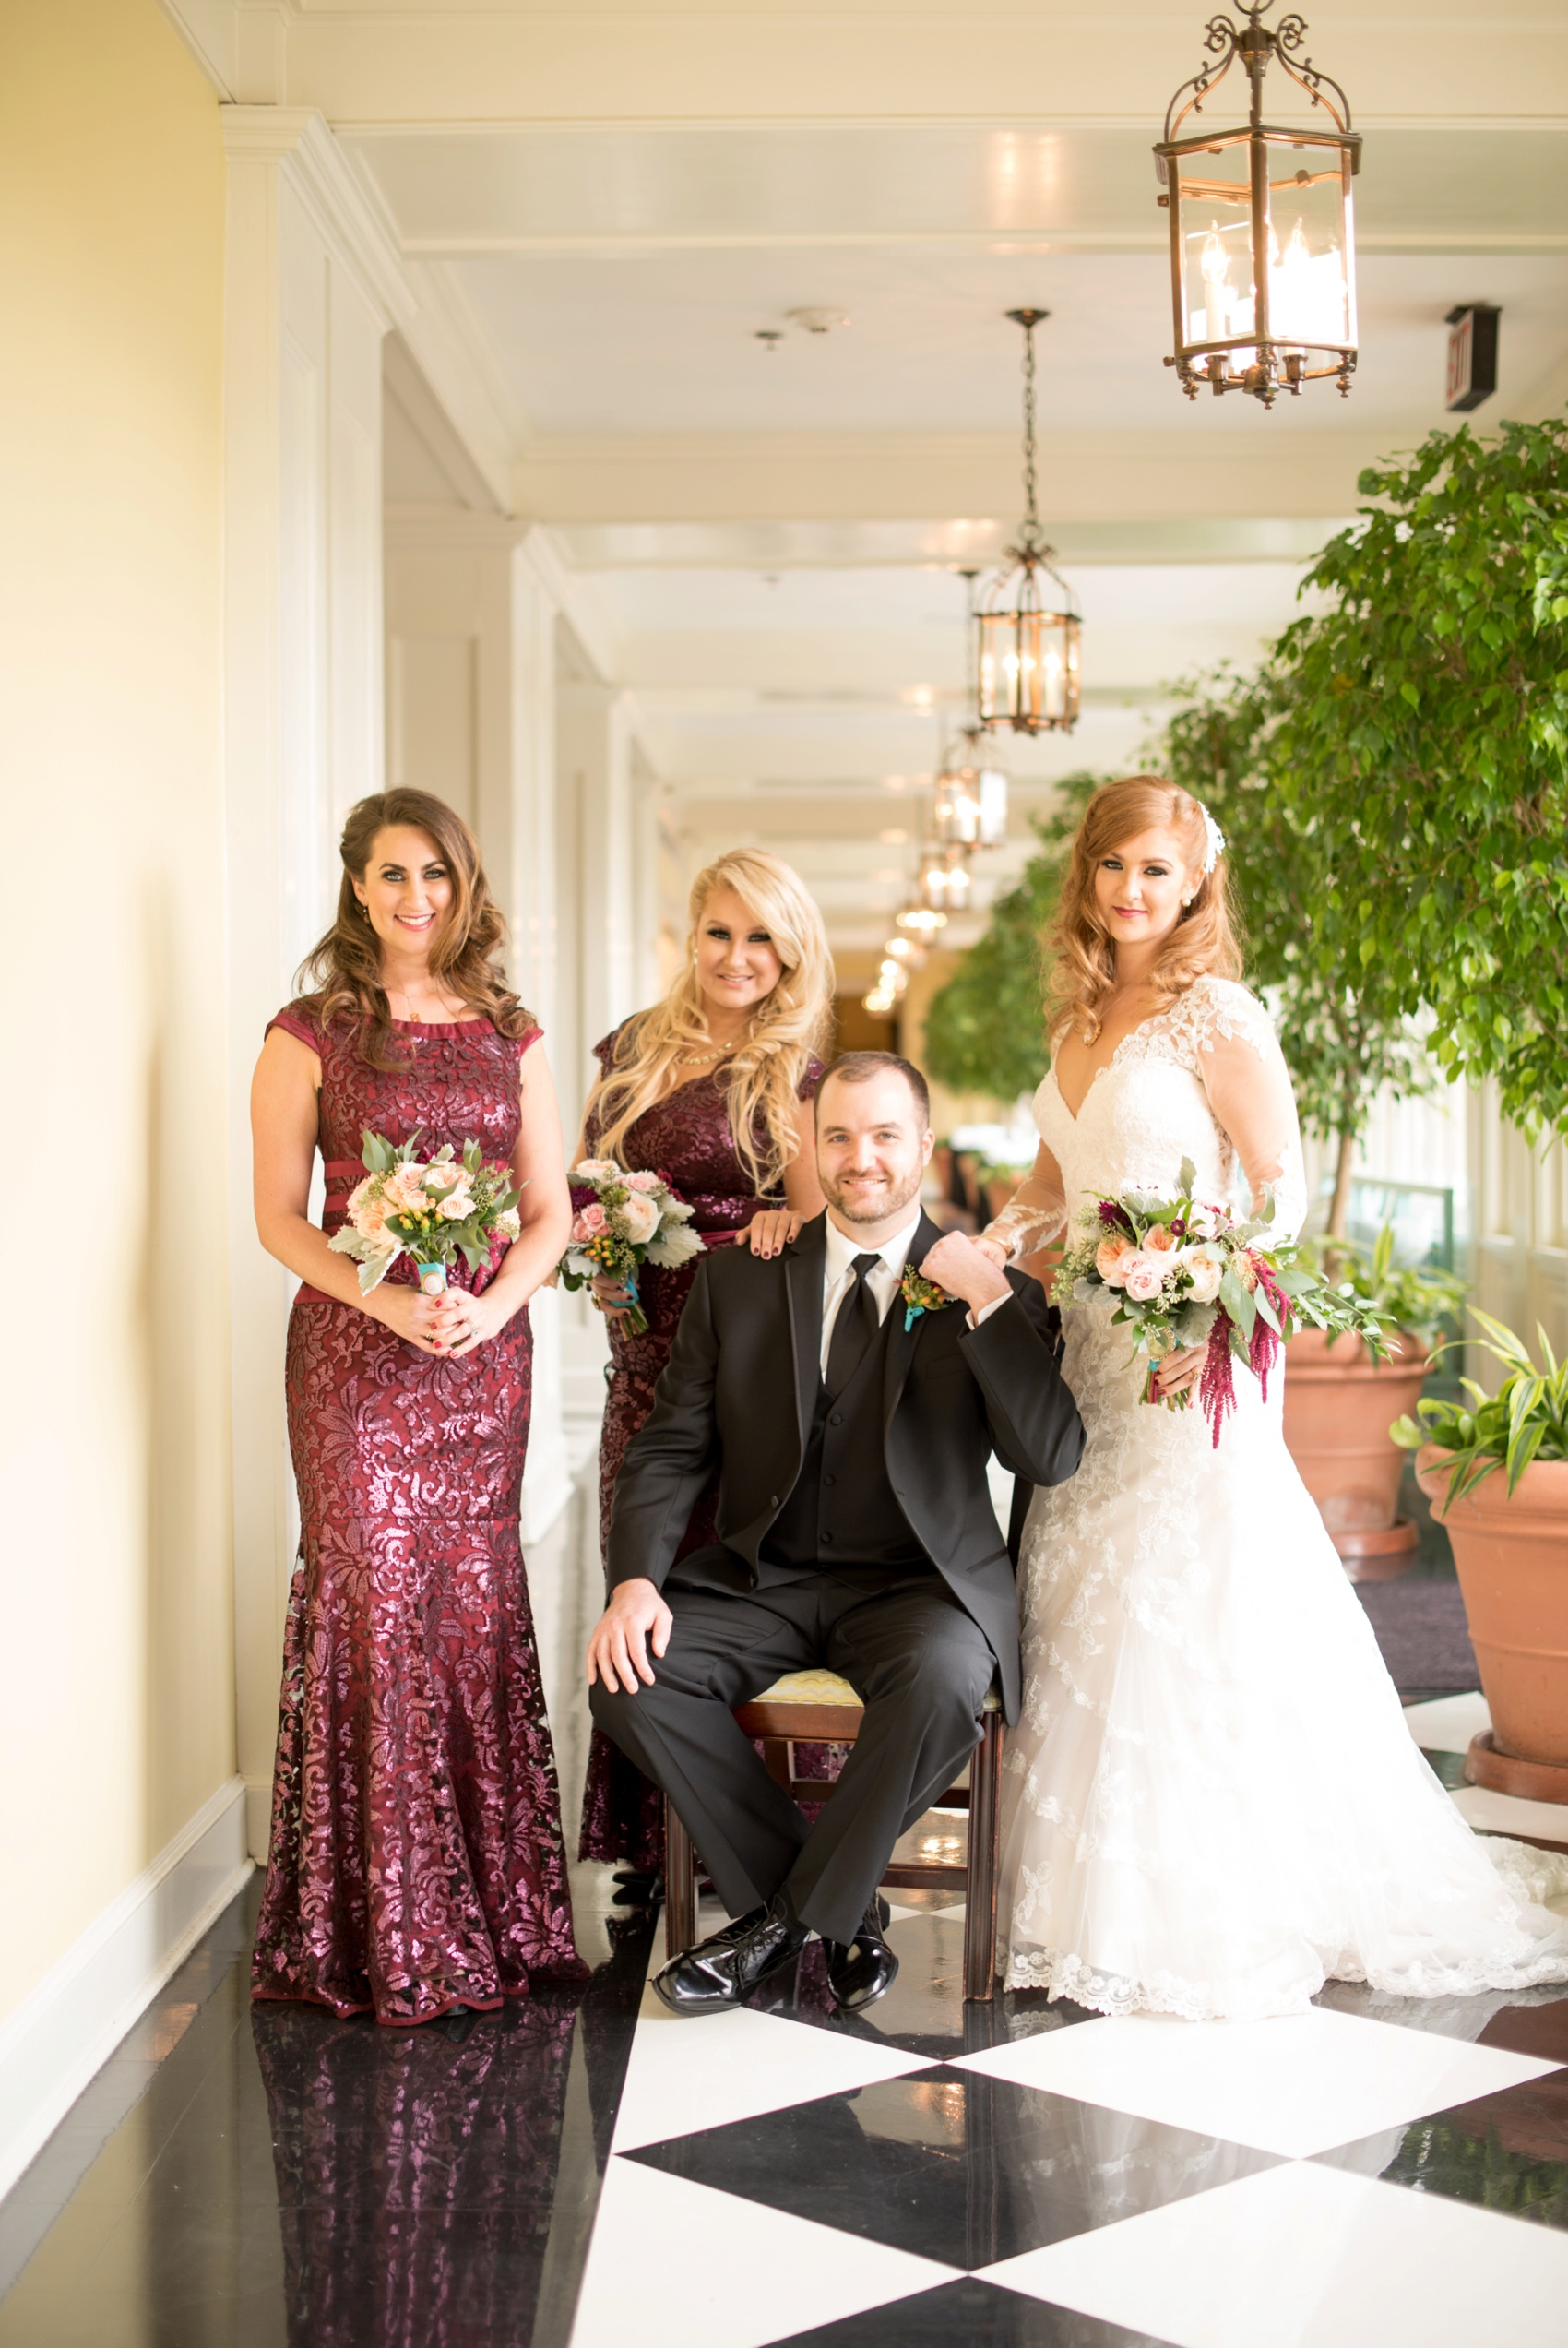 The Carolina Inn wedding photos by Mikkel Paige Photography, Raleigh wedding photographer. Planning by A Swanky Affair and flowers by Tres Bella. Unique bridal party photo with vintage elegance.